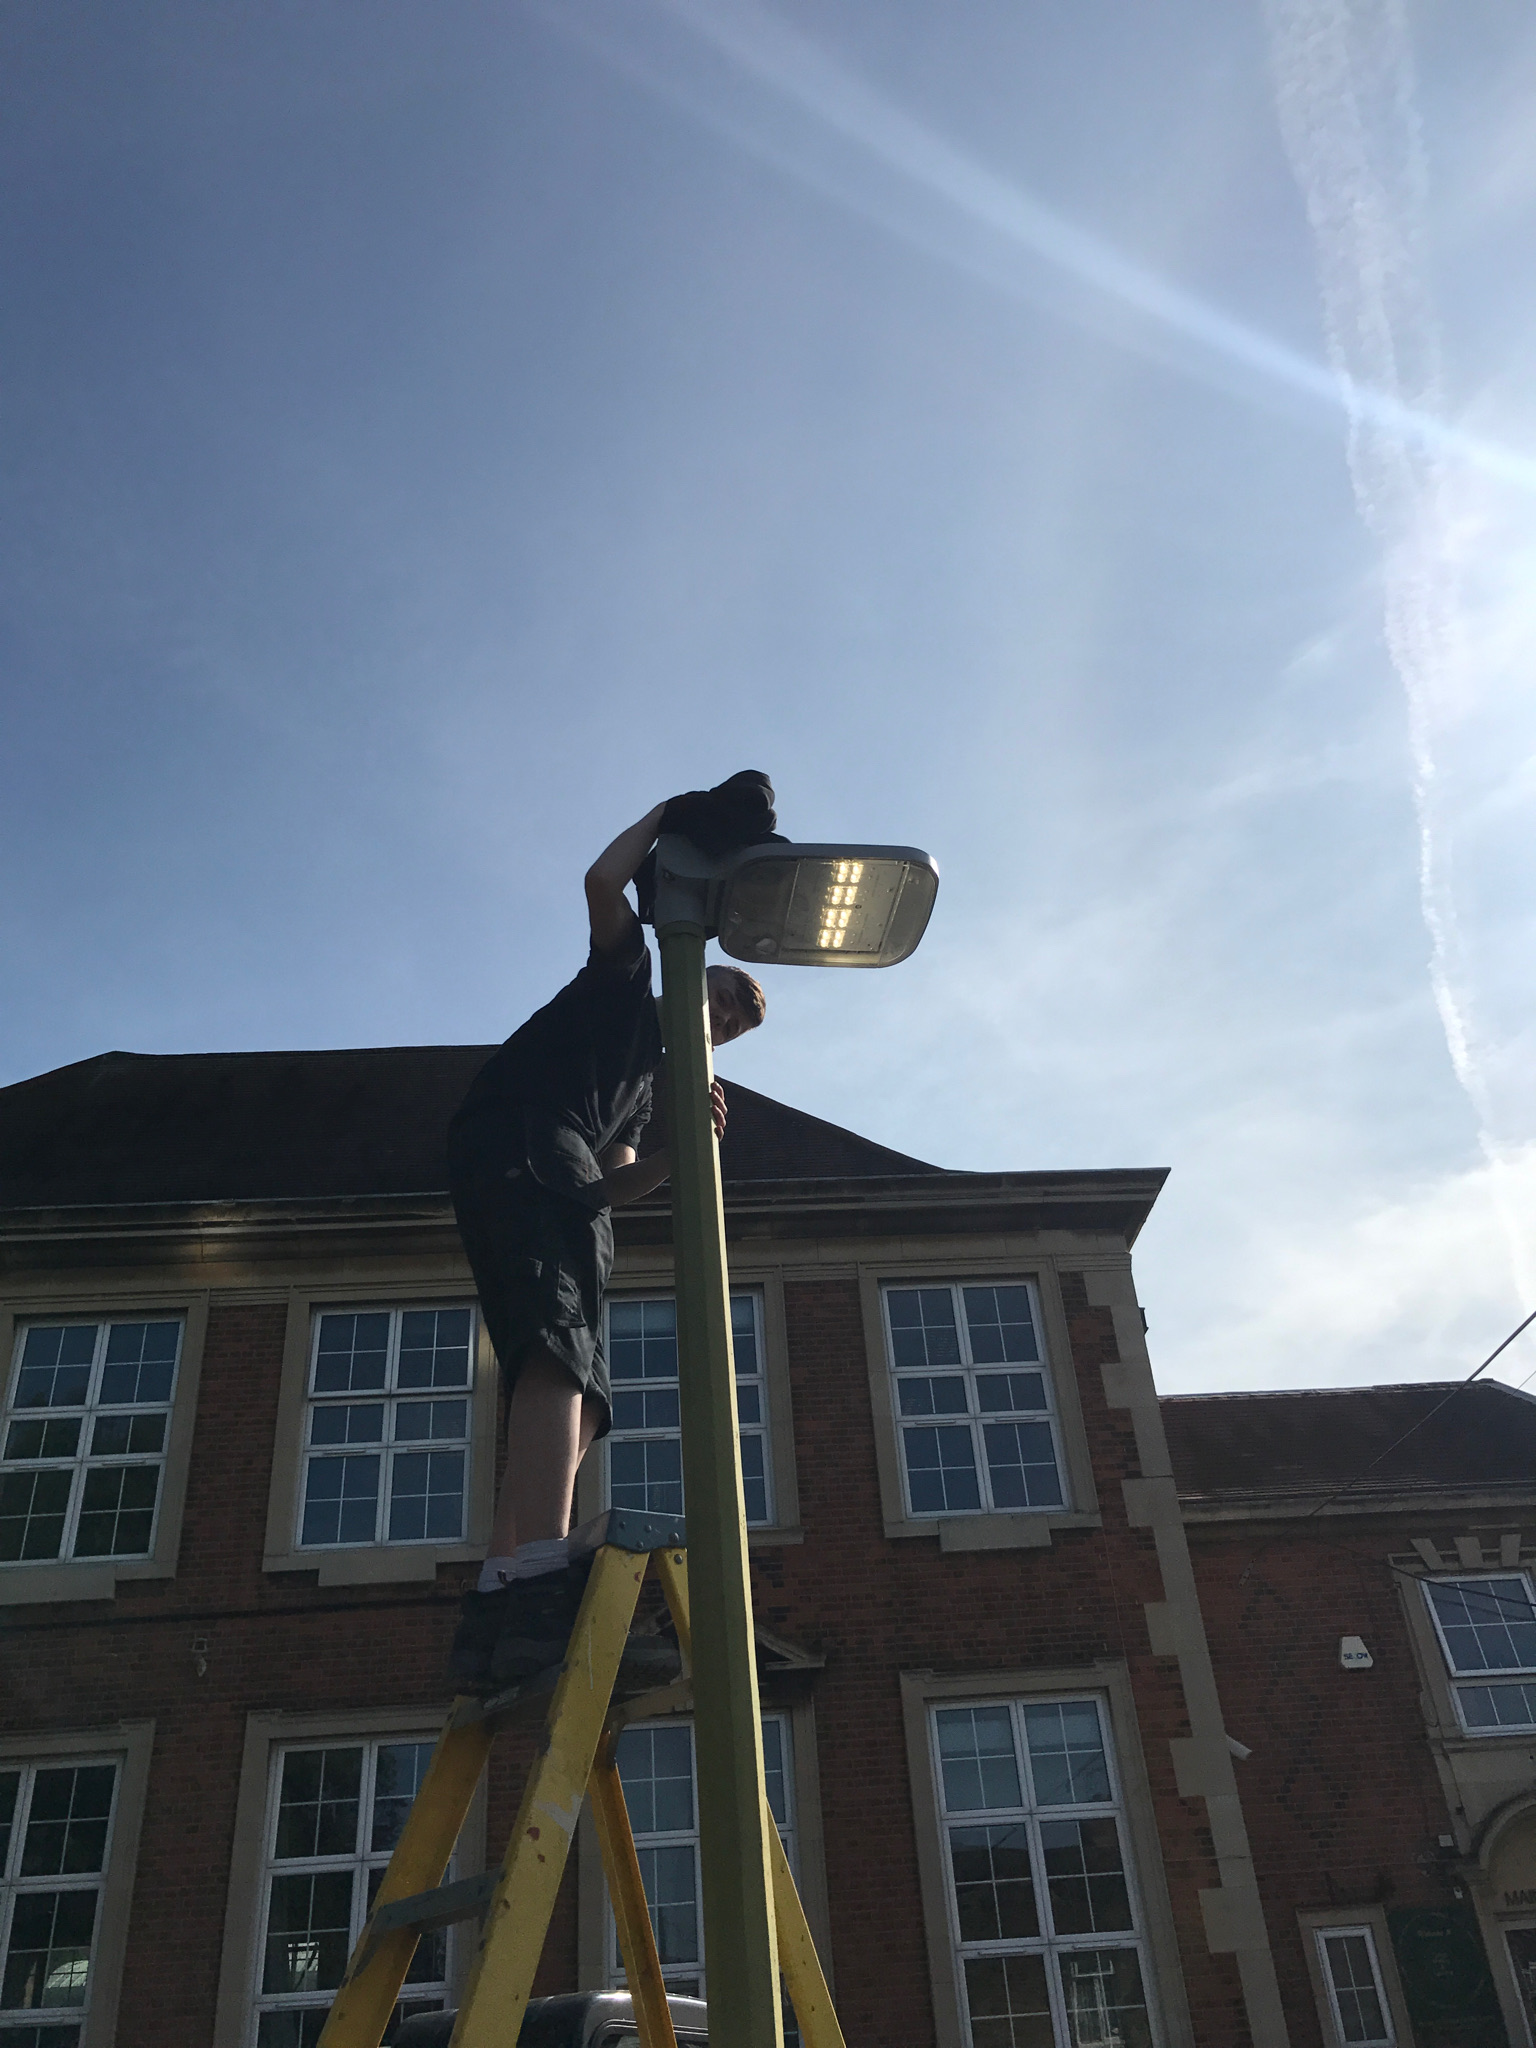 LANGLEY ELECTRICAL CONTRACTORS ELECTRICIANS IN HARROW ELECTRICIANS IN WATFORD ELECTRICIANS IN HERTFORDSHIRE ELECTRICIANS IN HEMEL HEMPSTEAD ELECTRICIANS IN RUSLIP ELECTRICIANS IN PINNER ELECTRICIANS IN NORTHWOOD ELECTRICIANS IN RICHMANSWORTH ELECTRICIANS IN LONDON ELECTRICIANS IN BOREHAMWOOD ELECTRICIANS IN EDGWARE ELECTRICIANS IN CHORLEYWOOD ELECTRICIANS IN ST ALBANS ELECTRICIANS IN RADLETT ELECTRICIANS IN BUSHEY ELECTRICIANS IN KINGS LANGLEY ELECTRICIANS IN CHESHAM ELECTRICIANS IN AMESHAM ELECTRICIANS IN HATFIELD